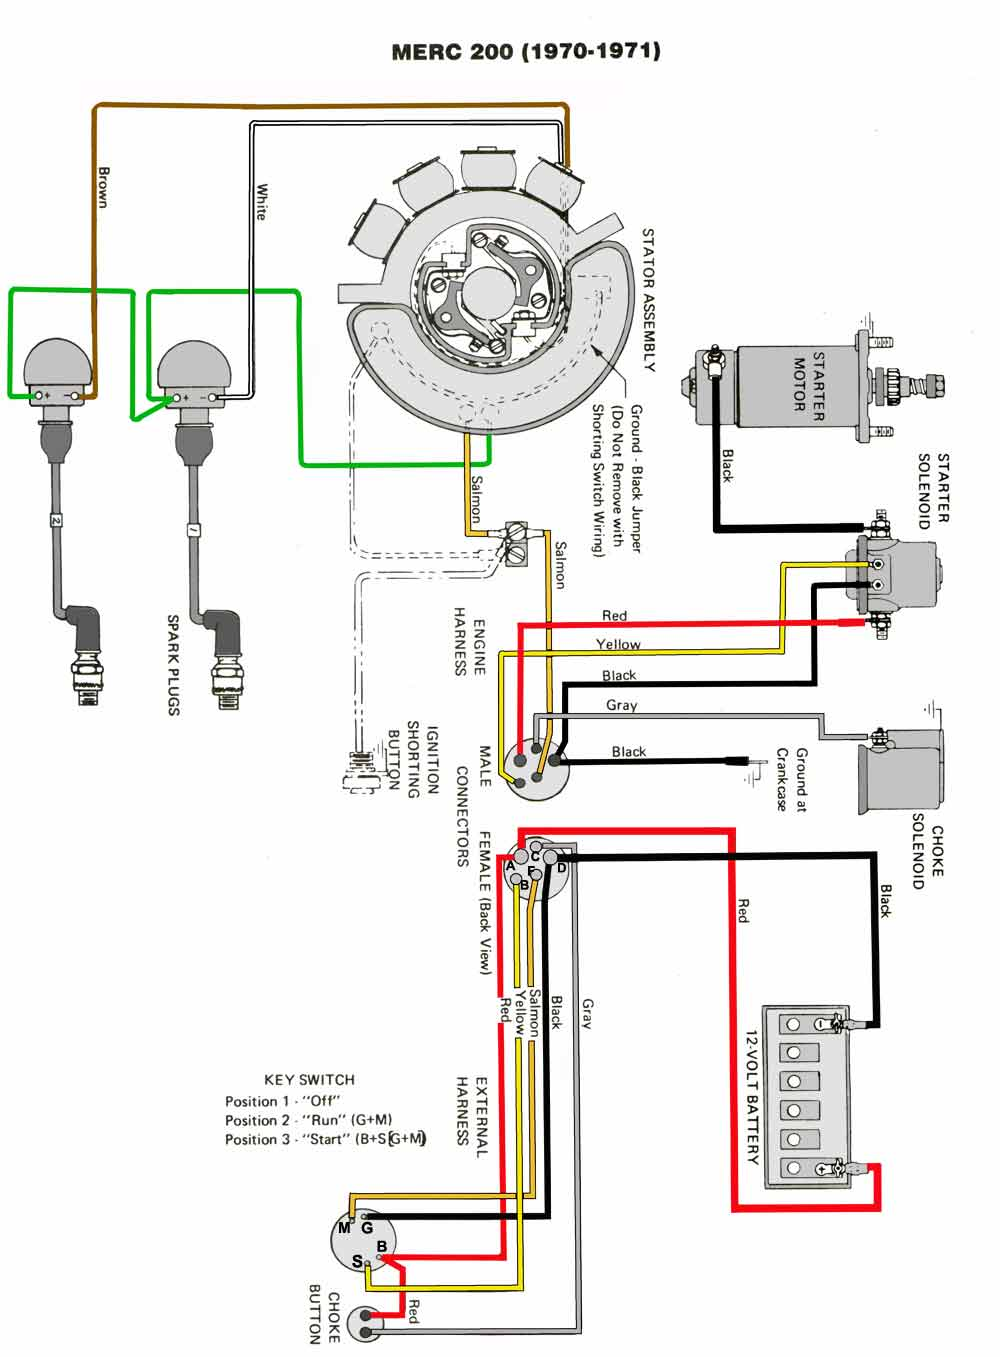 2007 polaris 500 wiring diagram 1977 mercury 500 wiring diagram high speed problems with 1972 mercury 7.5 thunderbolt outboard